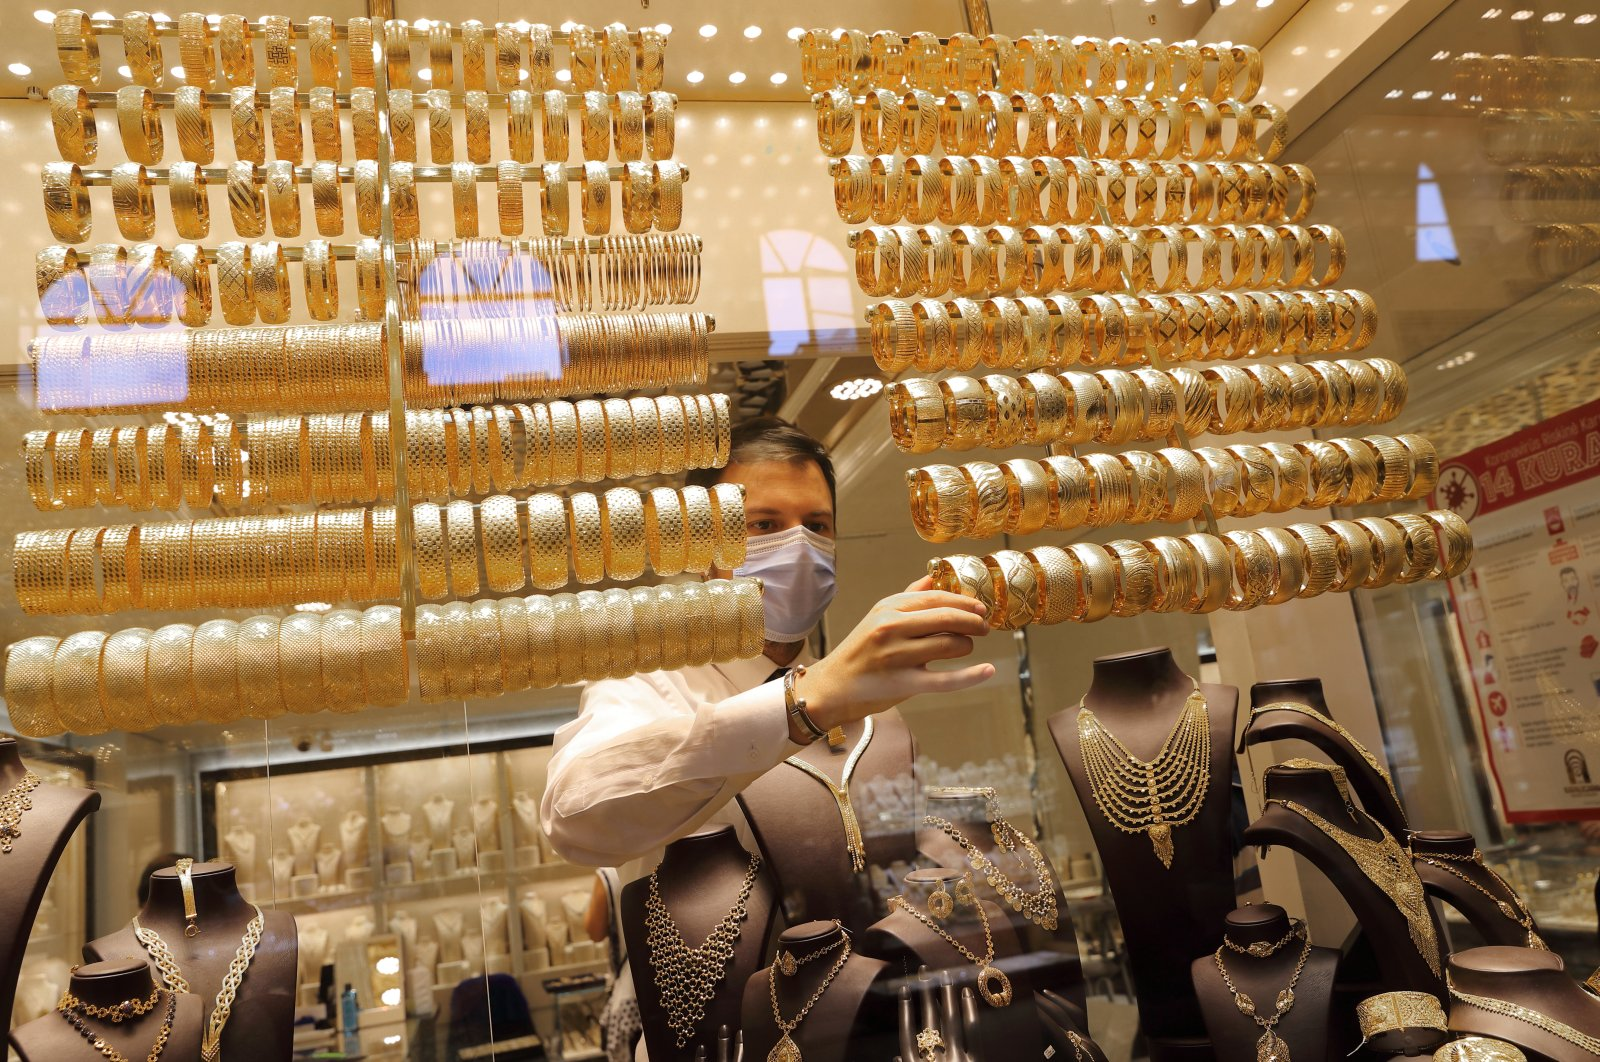 A goldsmith wearing a protective mask arranges golden bangles at a jewelry shop at the Grand Bazaar in Istanbul, Turkey, Aug. 6, 2020. (Reuters Photo)